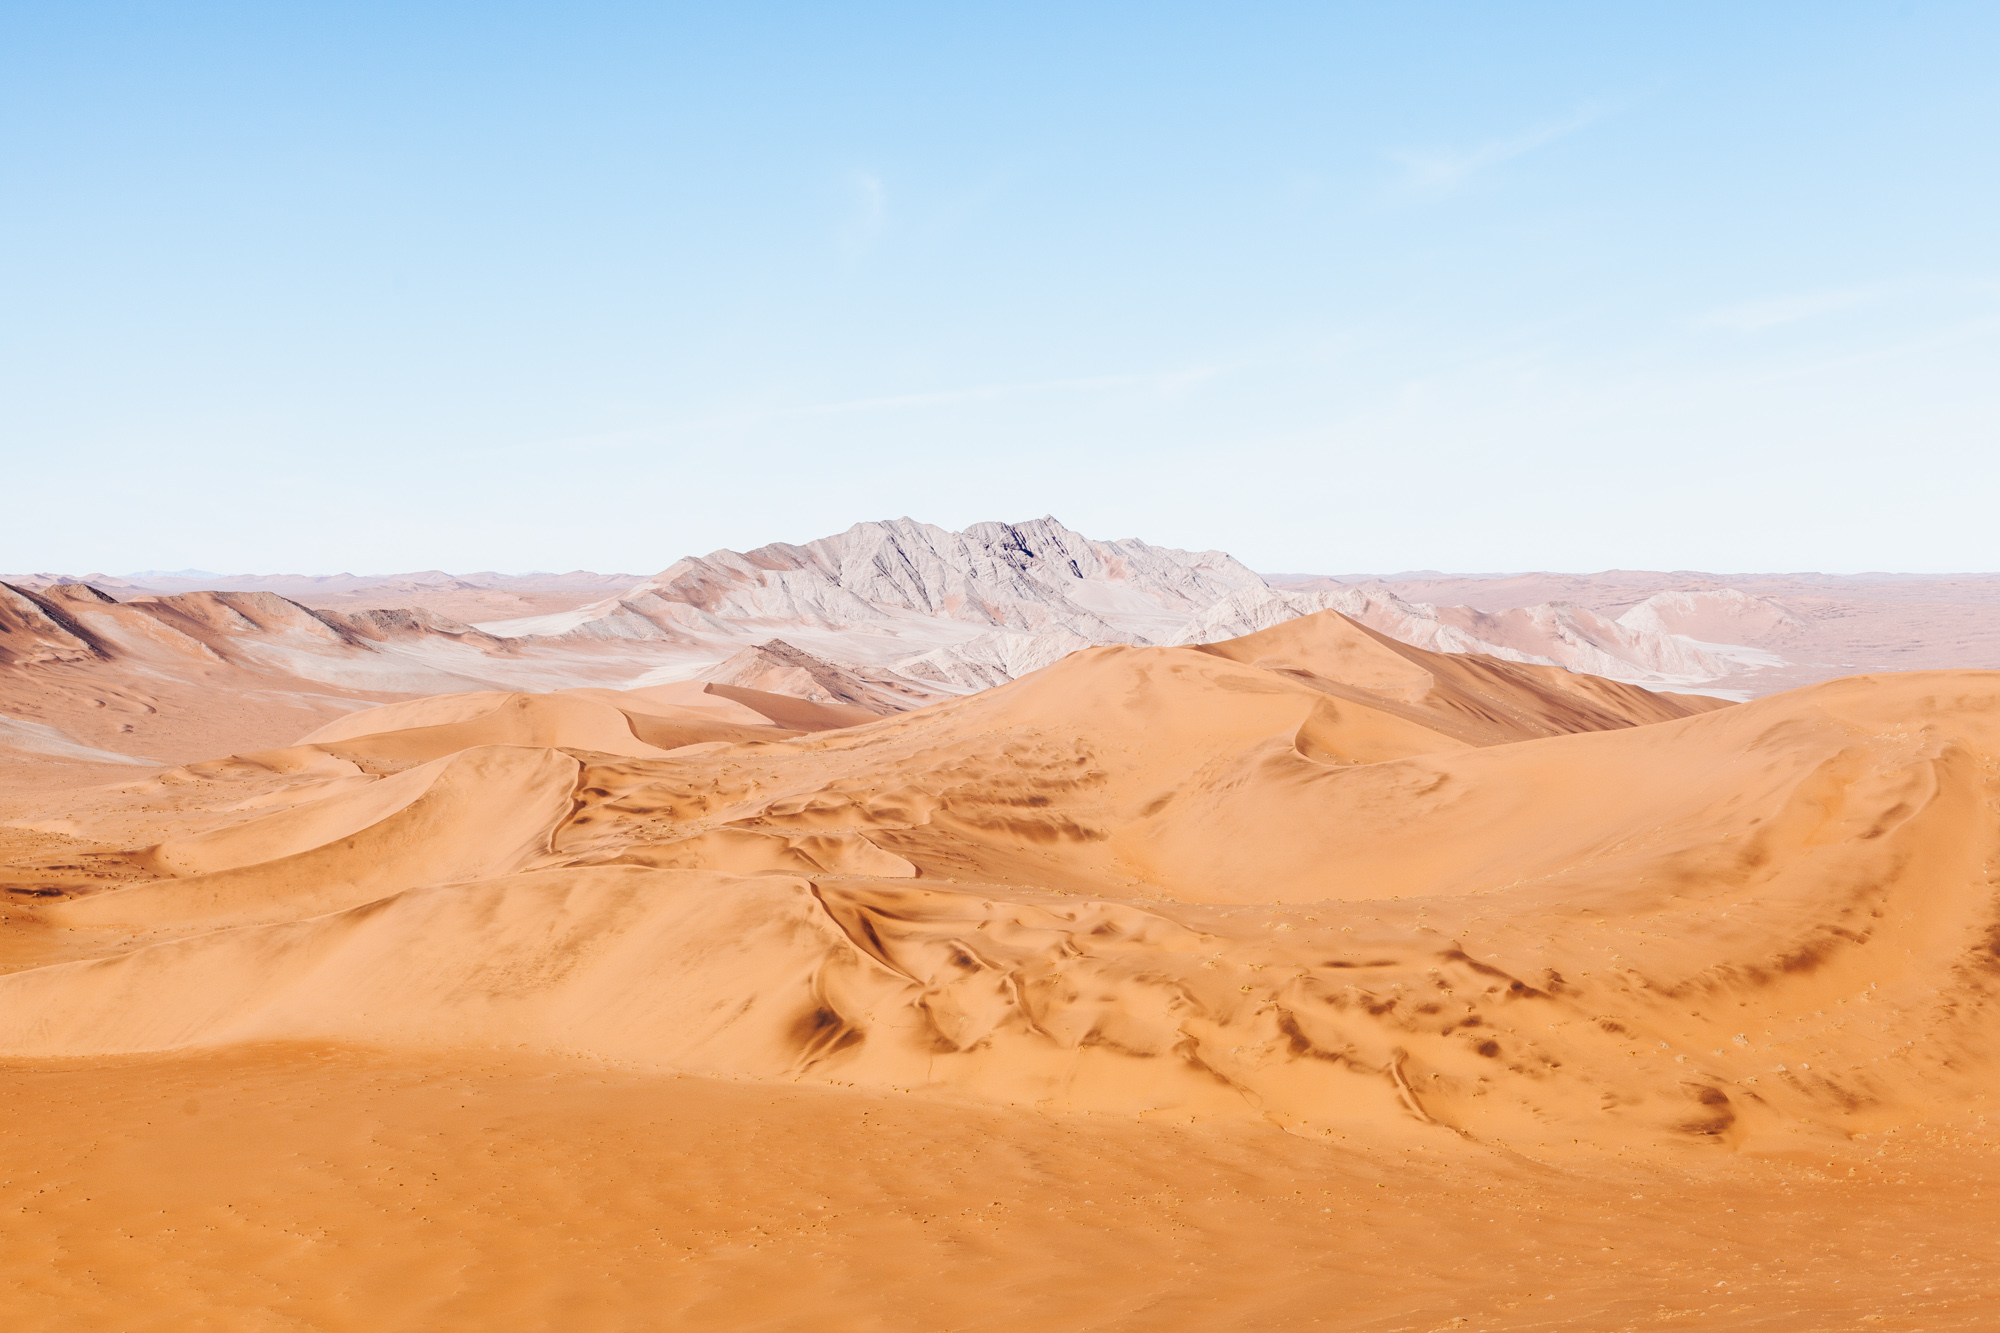 Endless views of the oldest desert in the world from the top of Big Daddy dune.